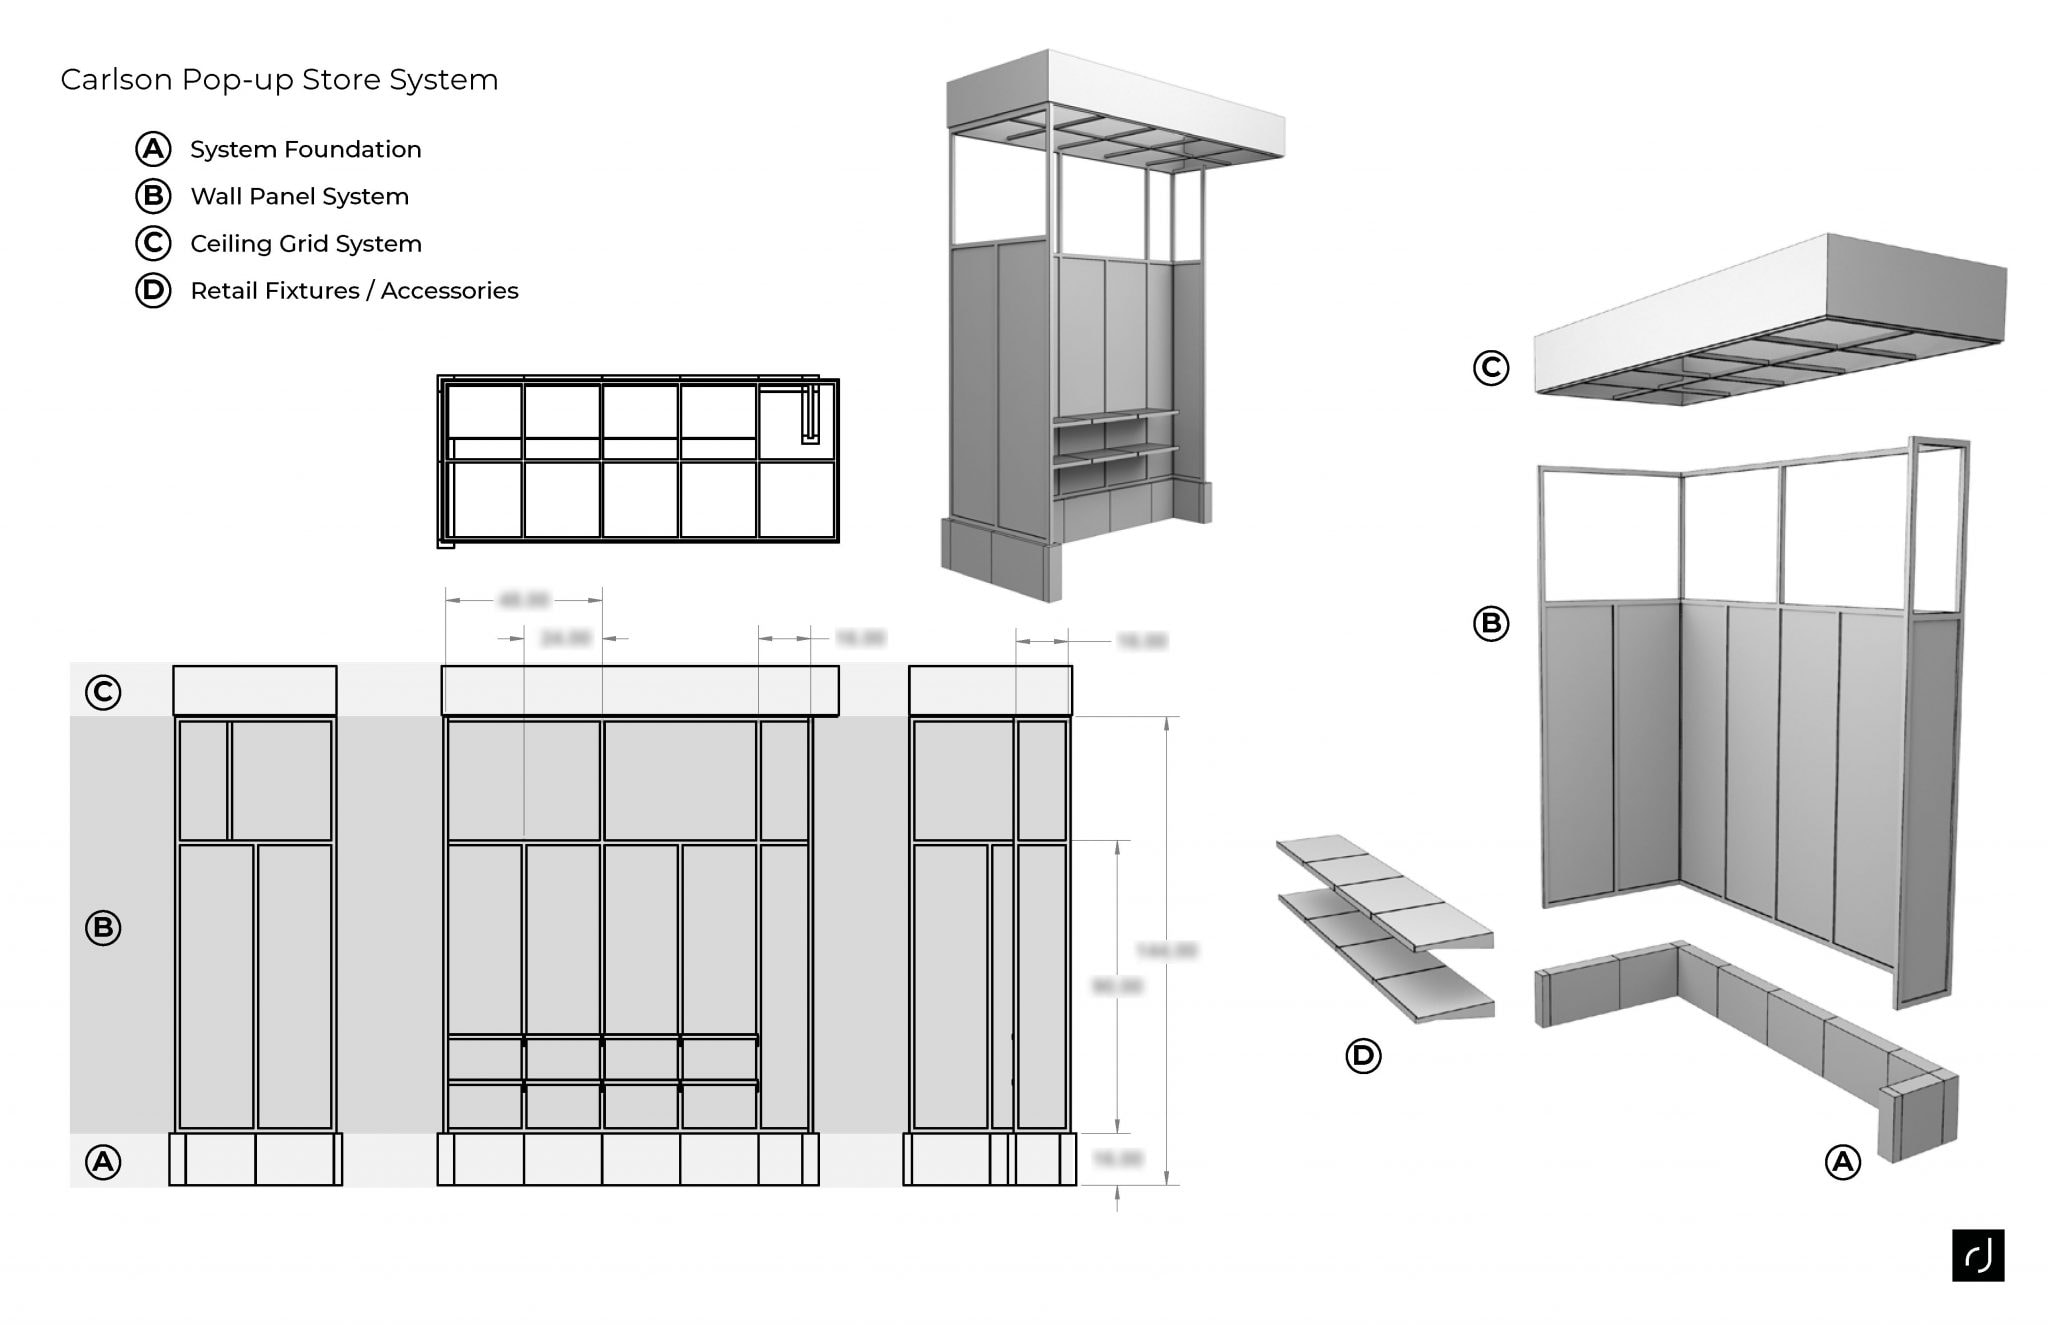 Carlson Popup System Engineering Design For Manufacture